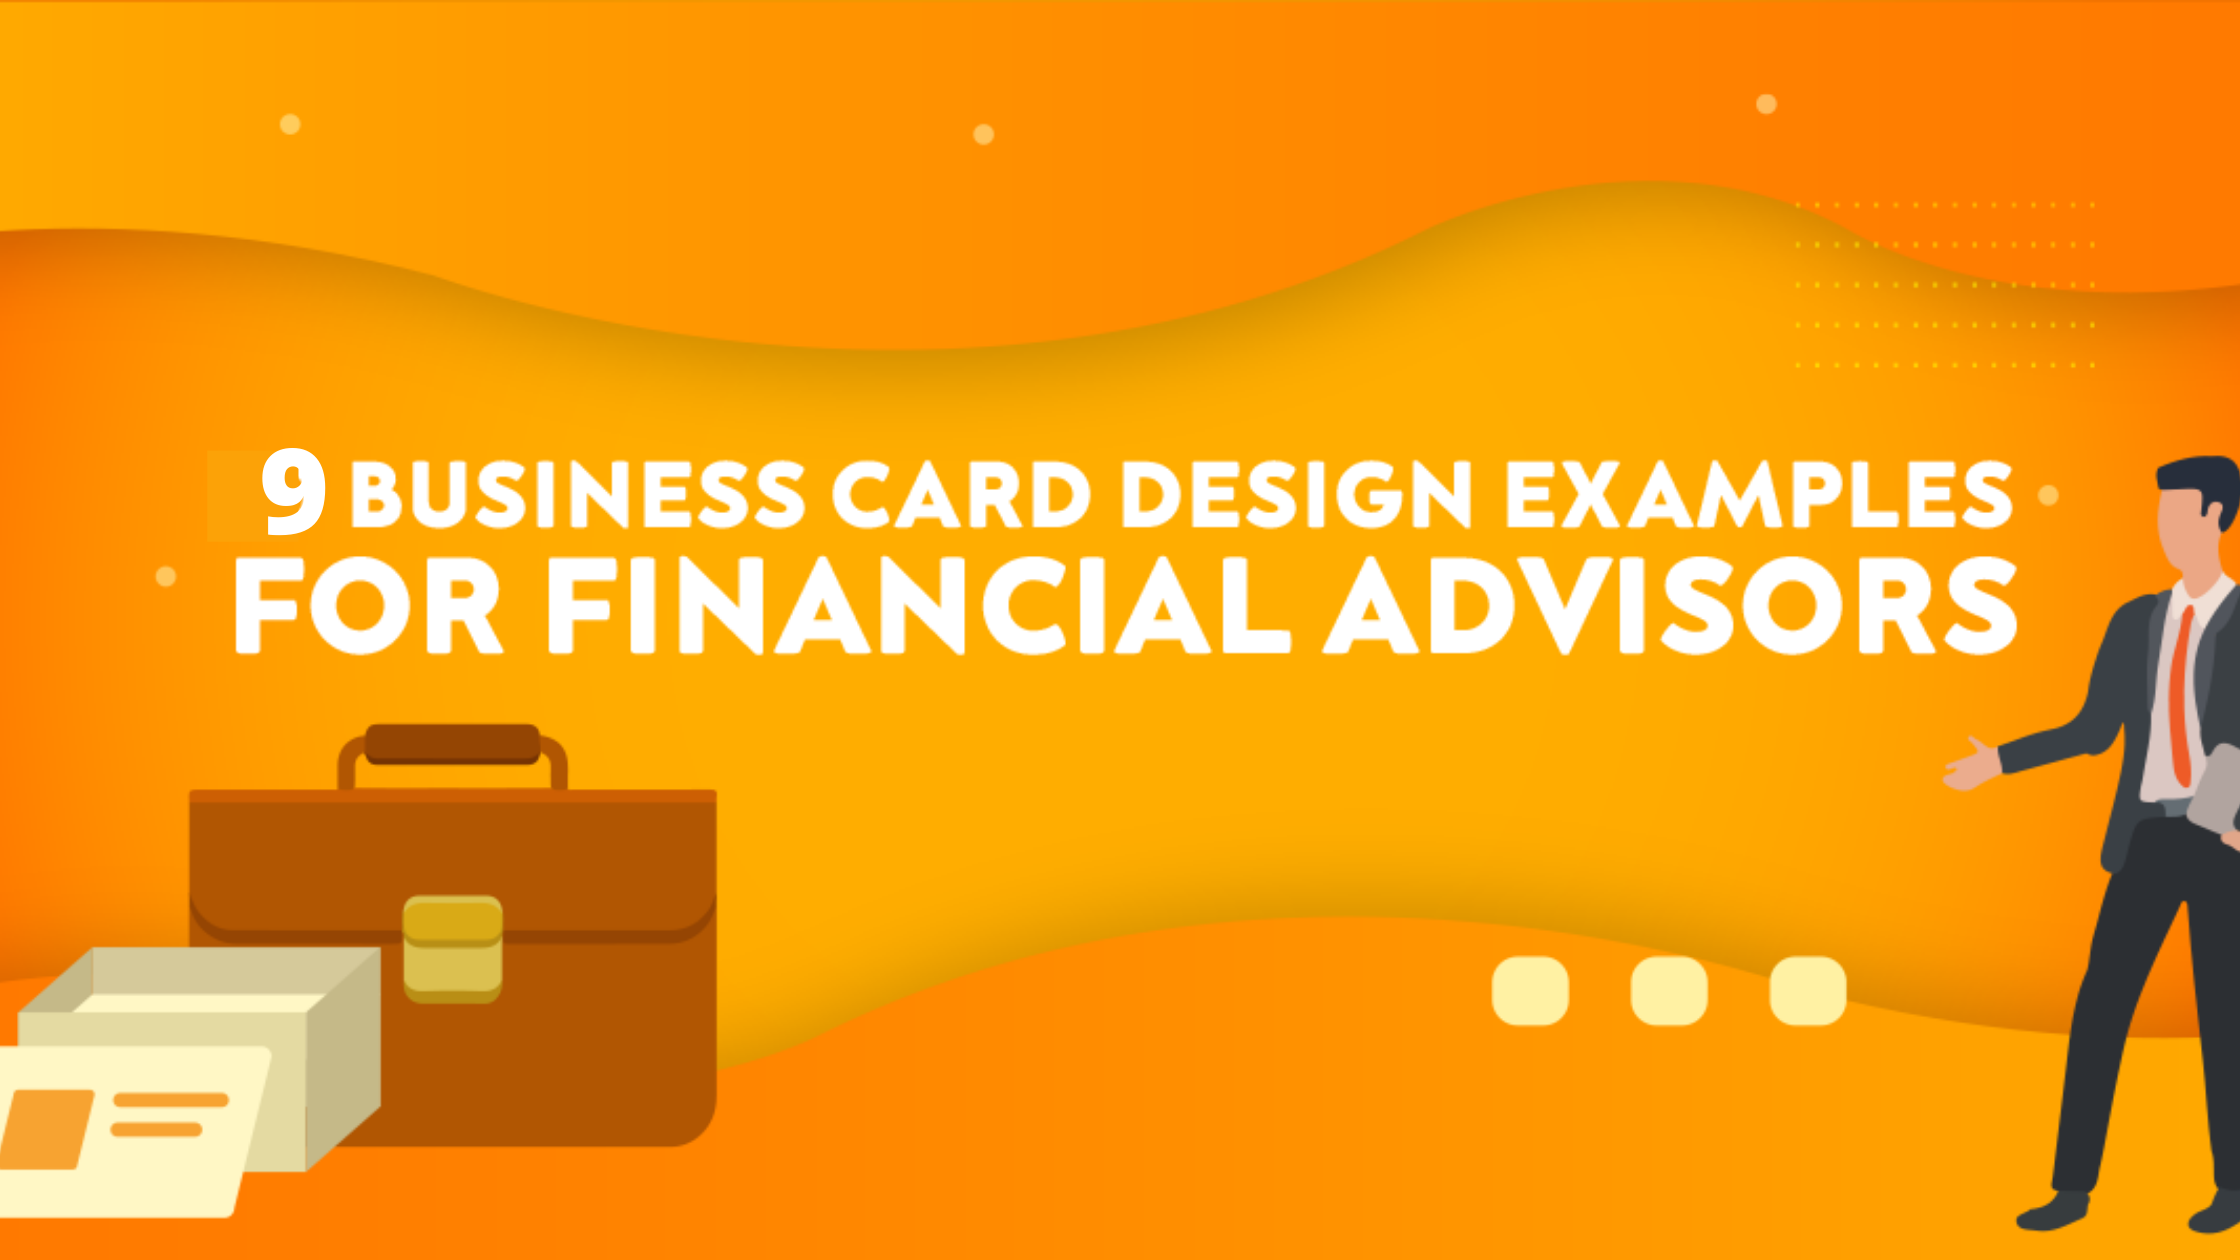 9 Business Card Design Examples for Financial Advisors